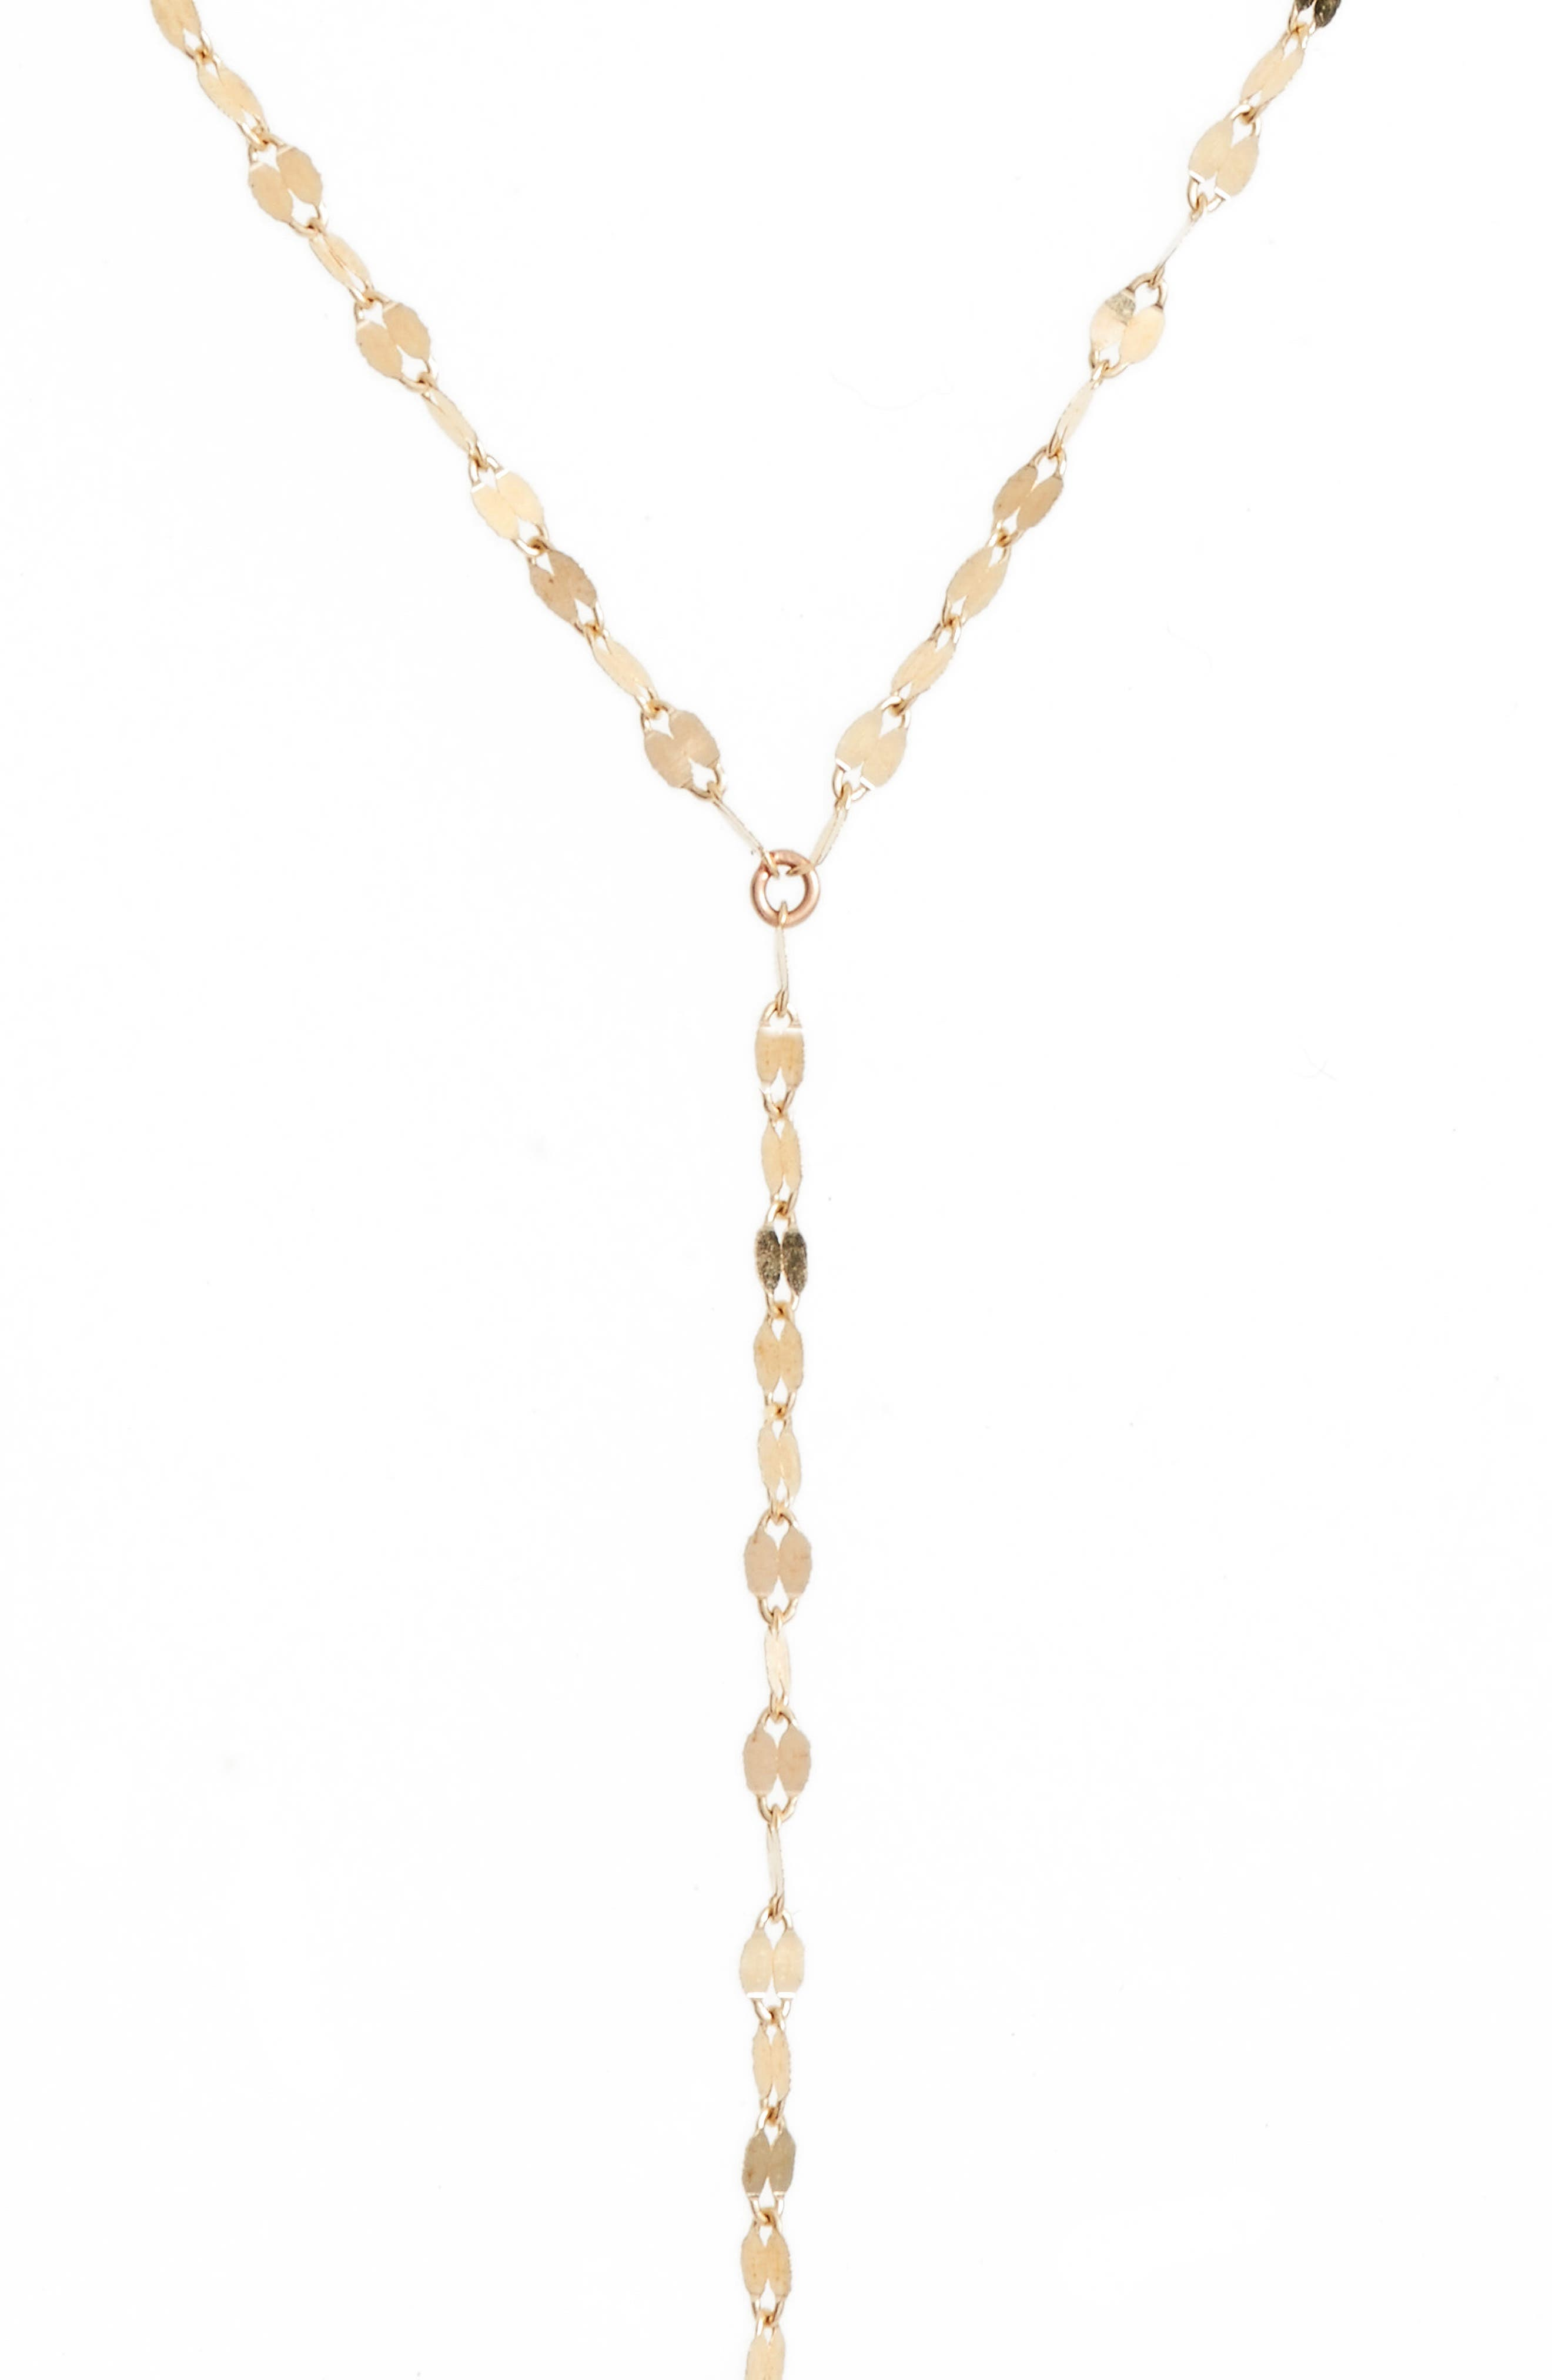 Y-Necklace,                             Main thumbnail 1, color,                             YELLOW GOLD